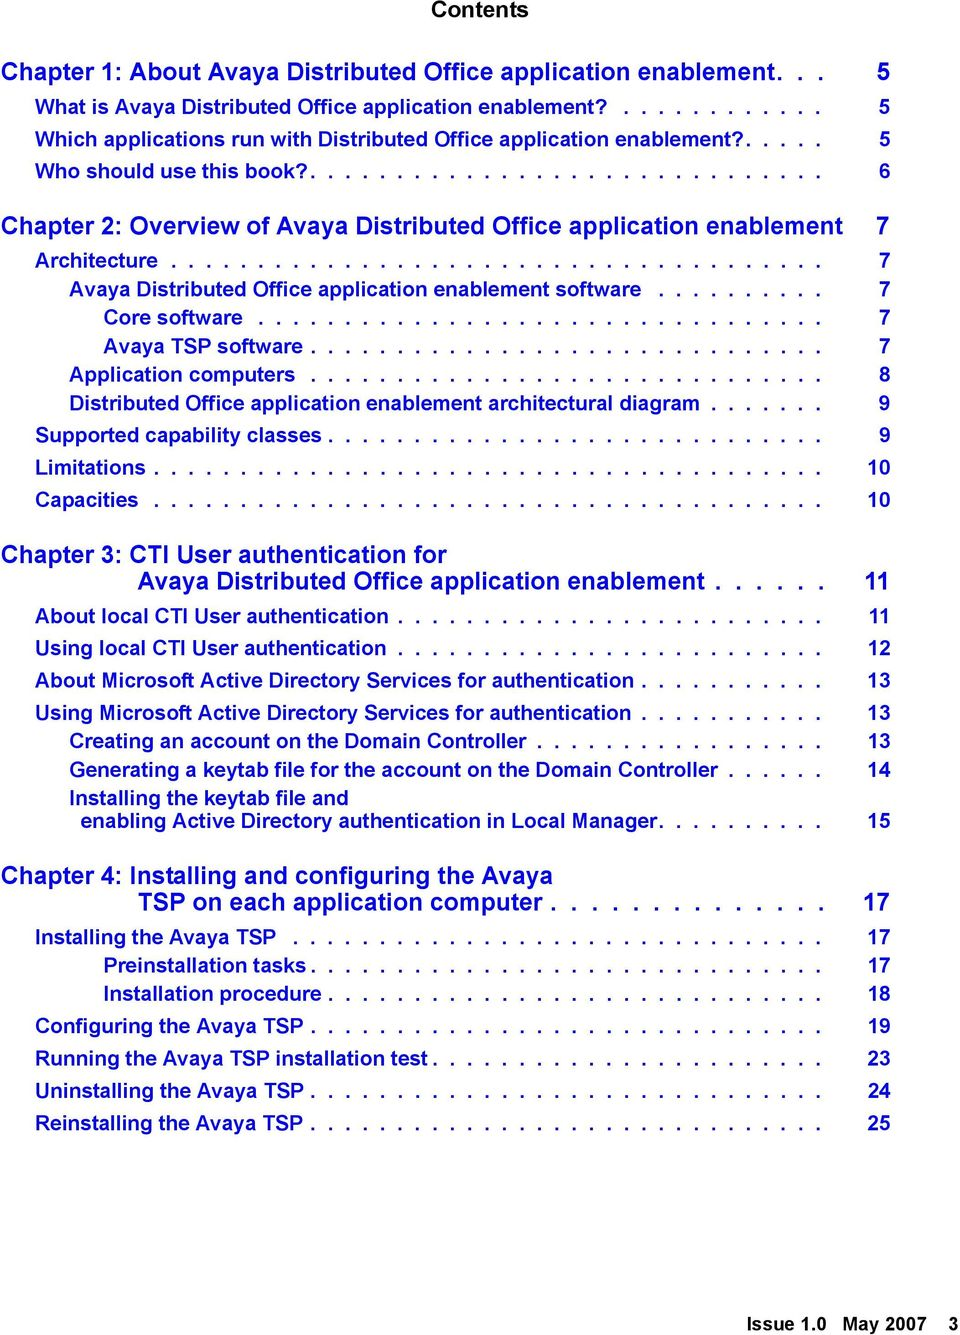 .............................. 6 Chapter 2: Overview of Avaya Distributed Office application enablement 7 Architecture...................................... 7 Avaya Distributed Office application enablement software.